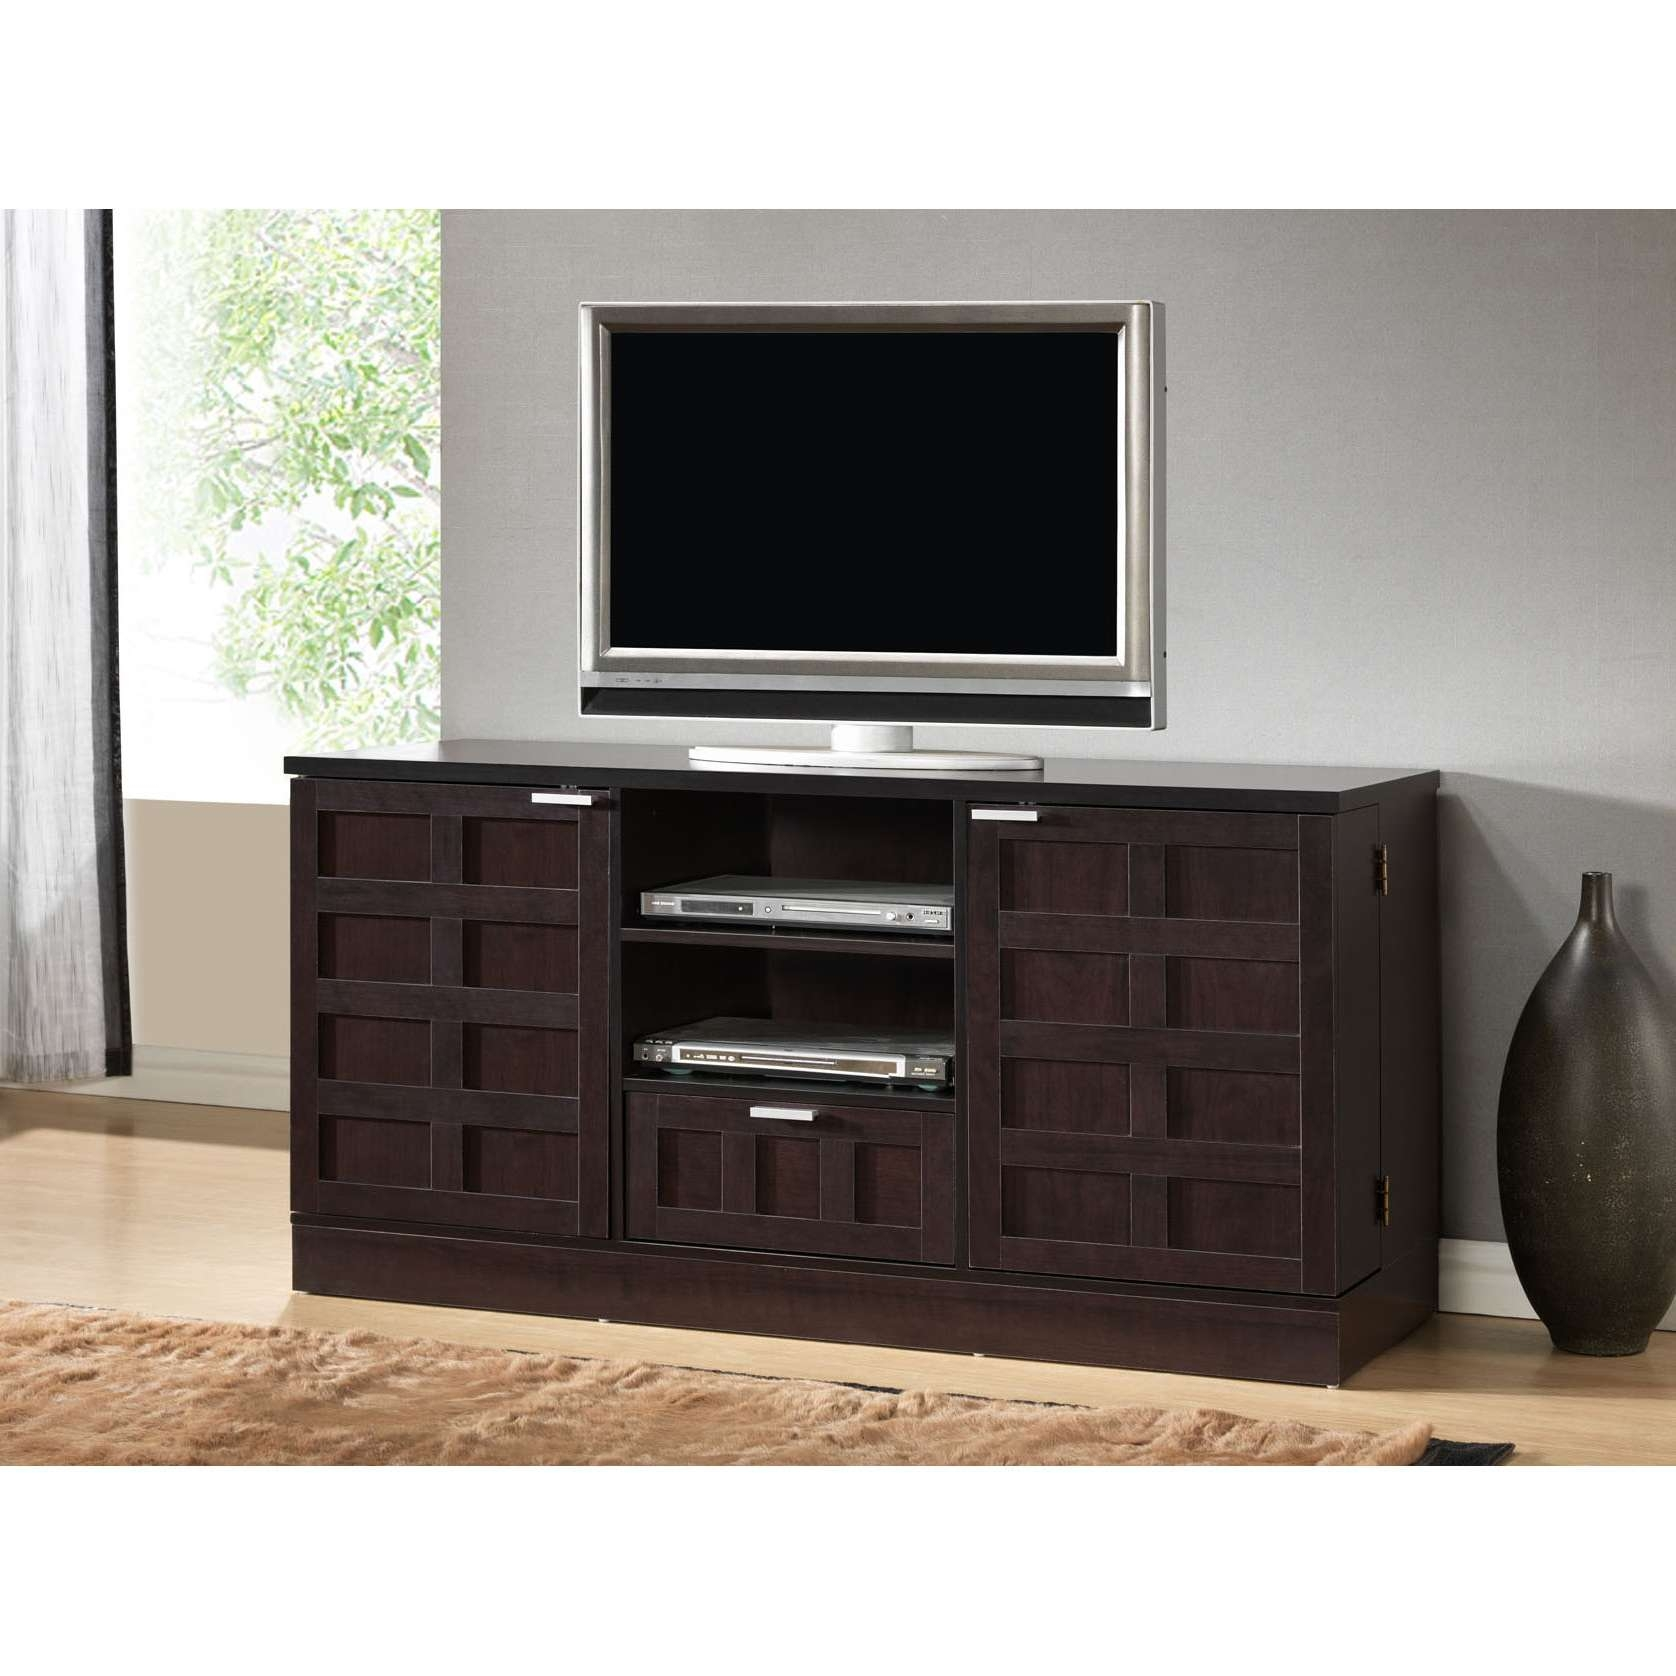 Black Wooden Tv Cabinet With Doors And Racks Also Single Drawer On Regarding Tv Cabinets With Drawers (View 8 of 20)